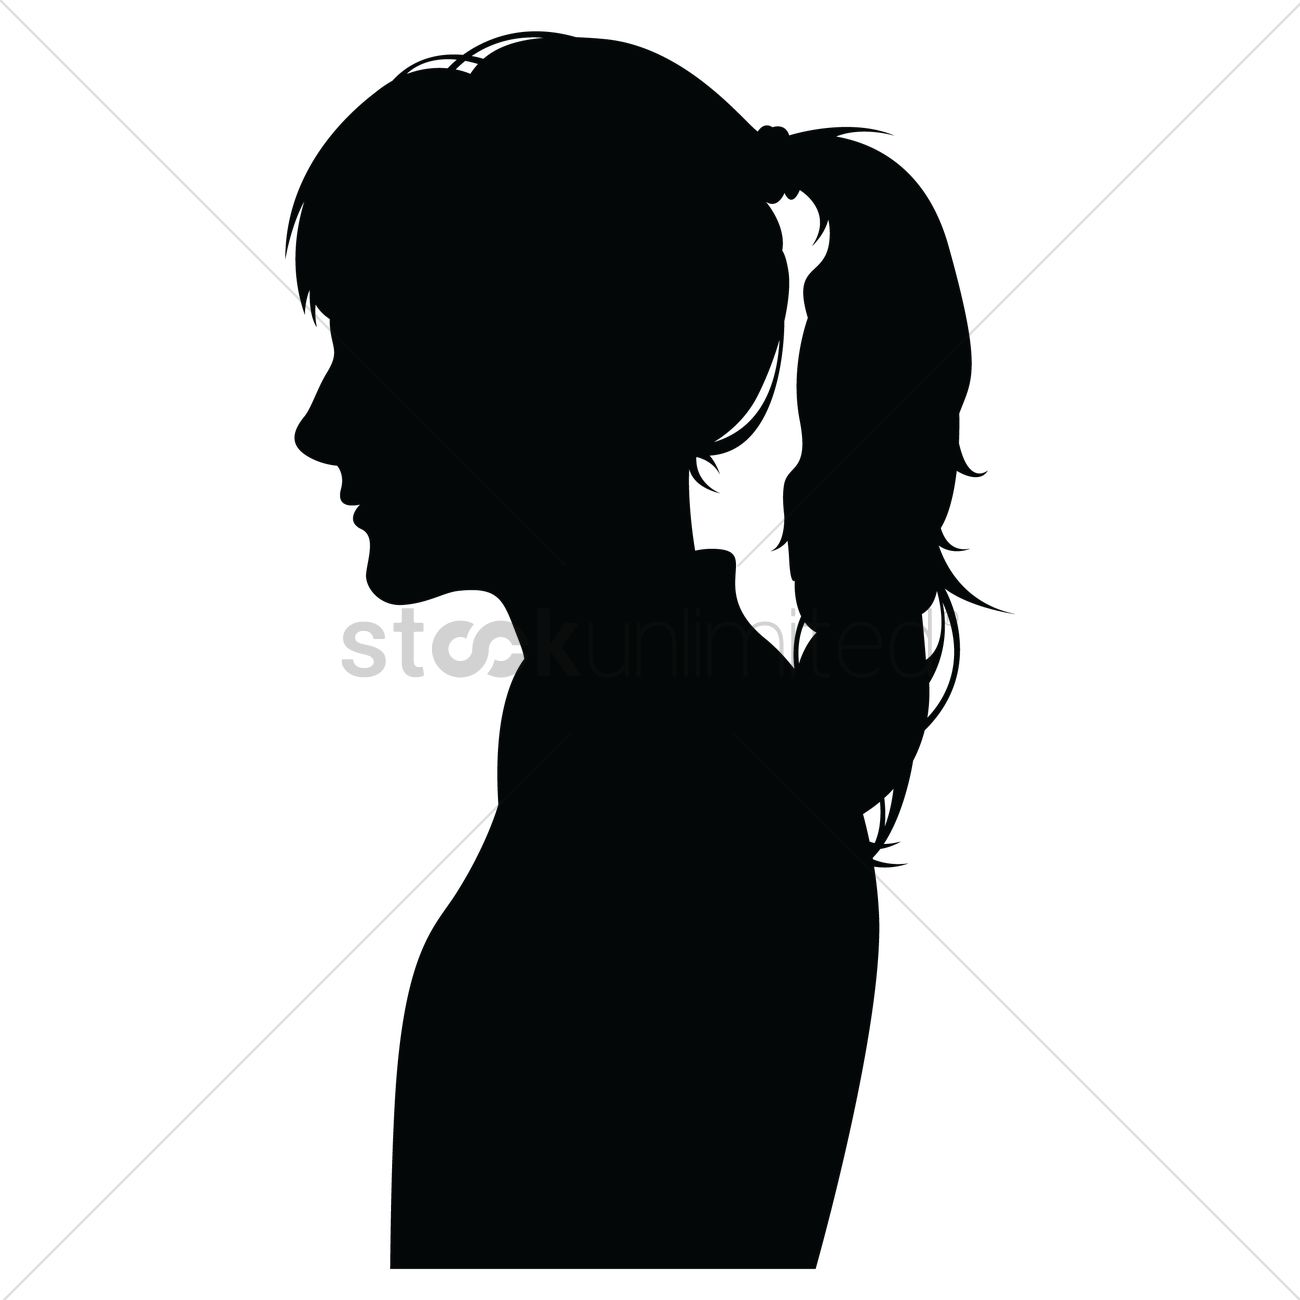 Silhouette of Man and Woman Chatting Online - Download Free Vectors, Clipart  Graphics & Vector Art